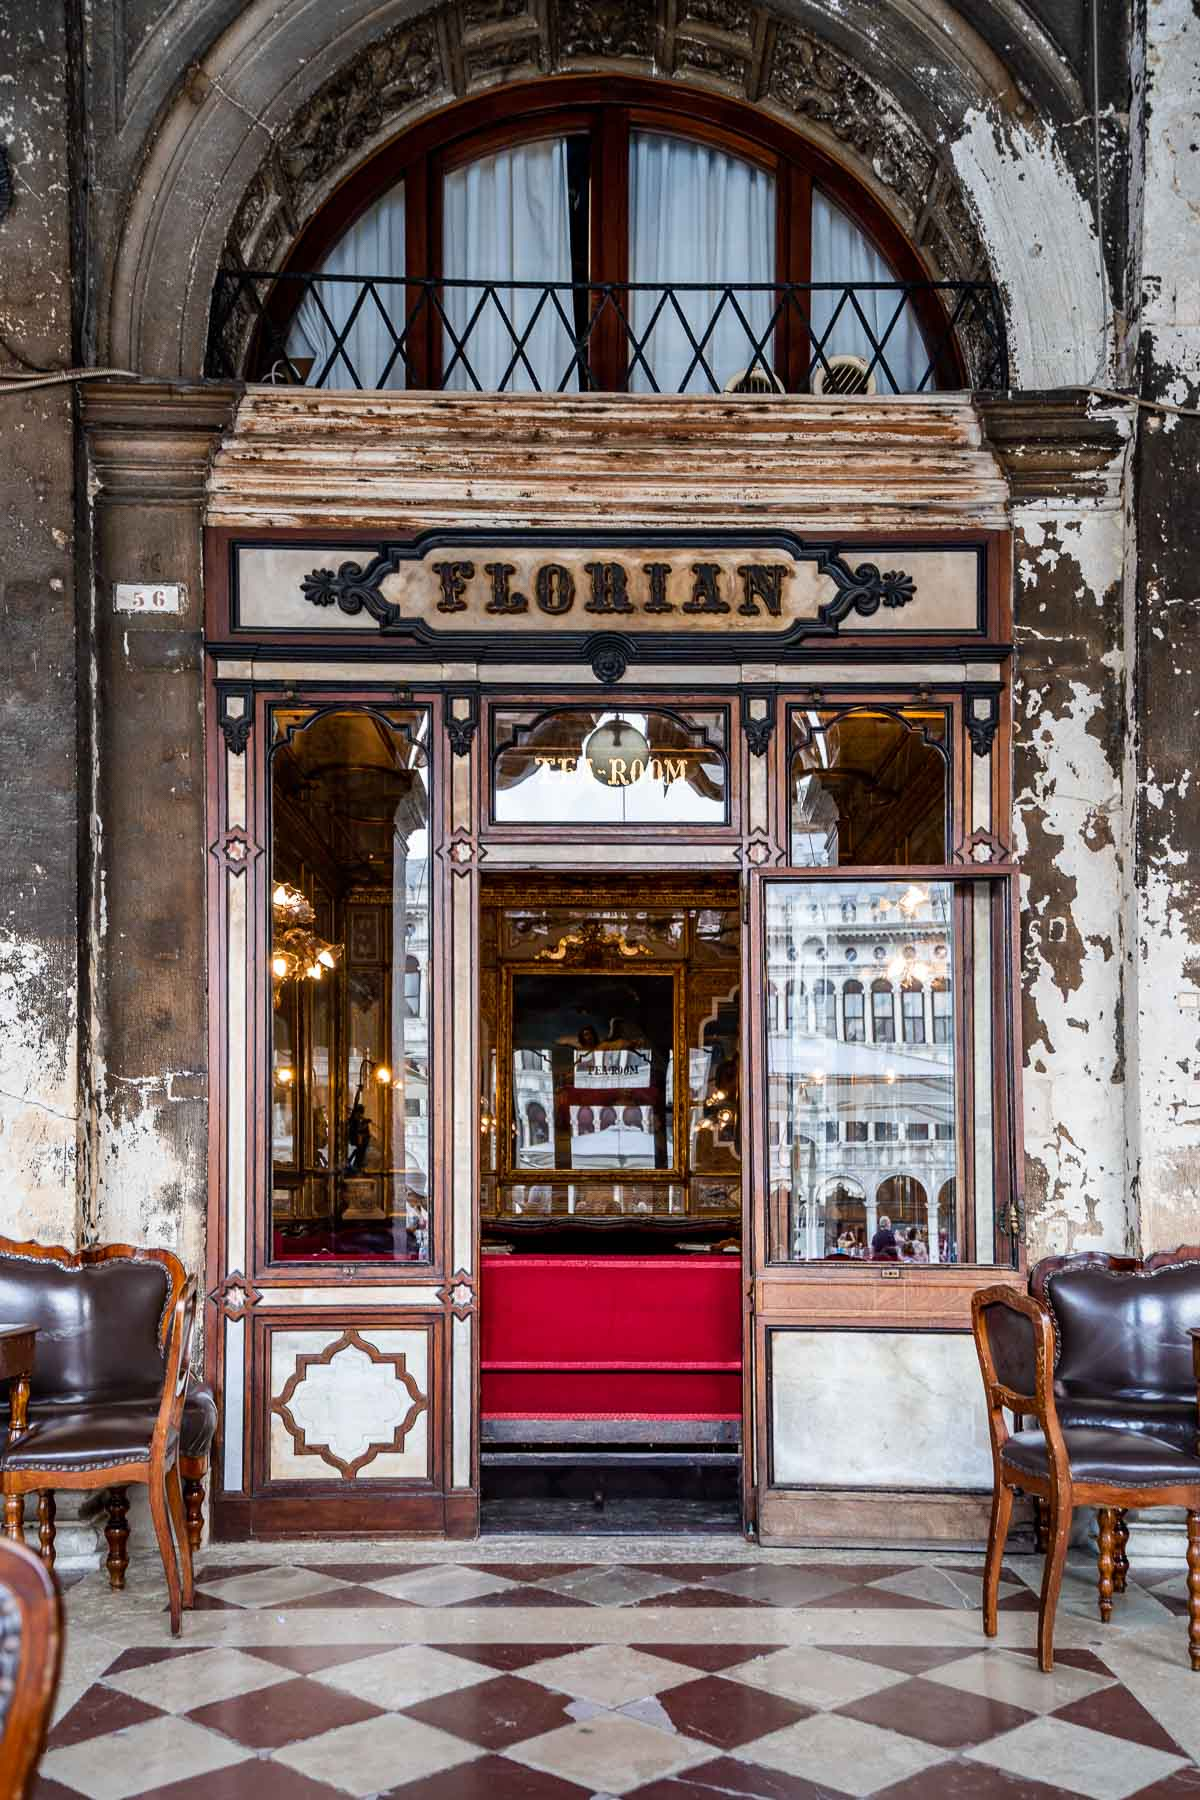 Florian Cafe in Venice, Italy